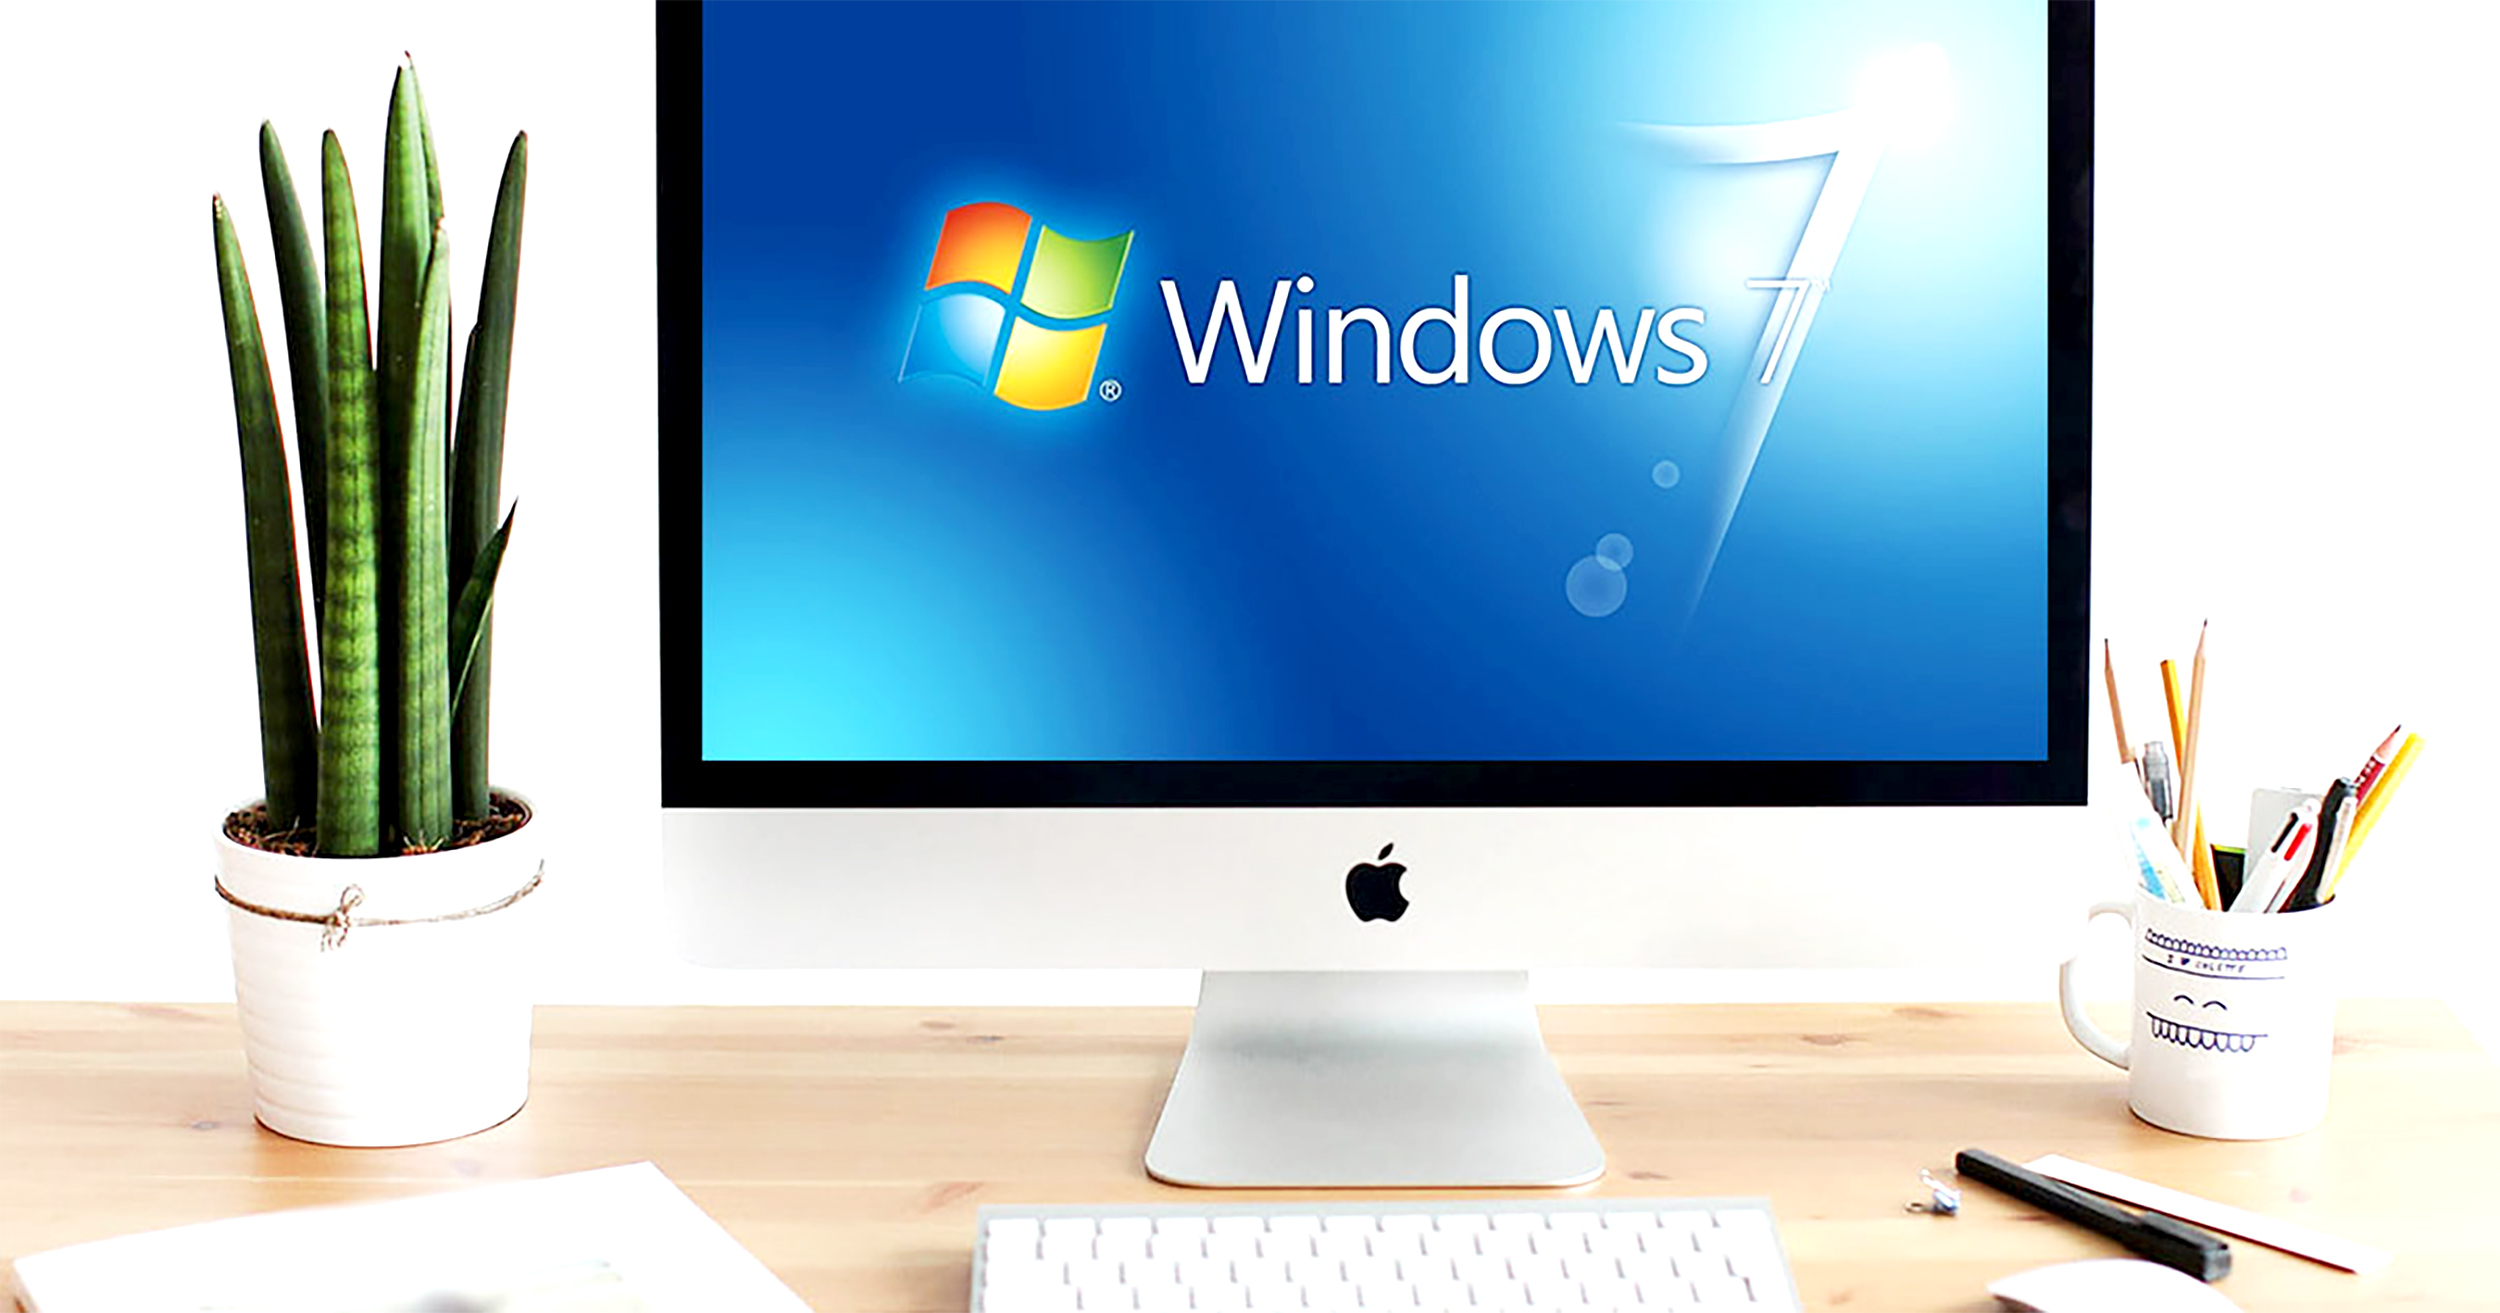 create windows 10 bootable usb from iso on mac without bootcamp